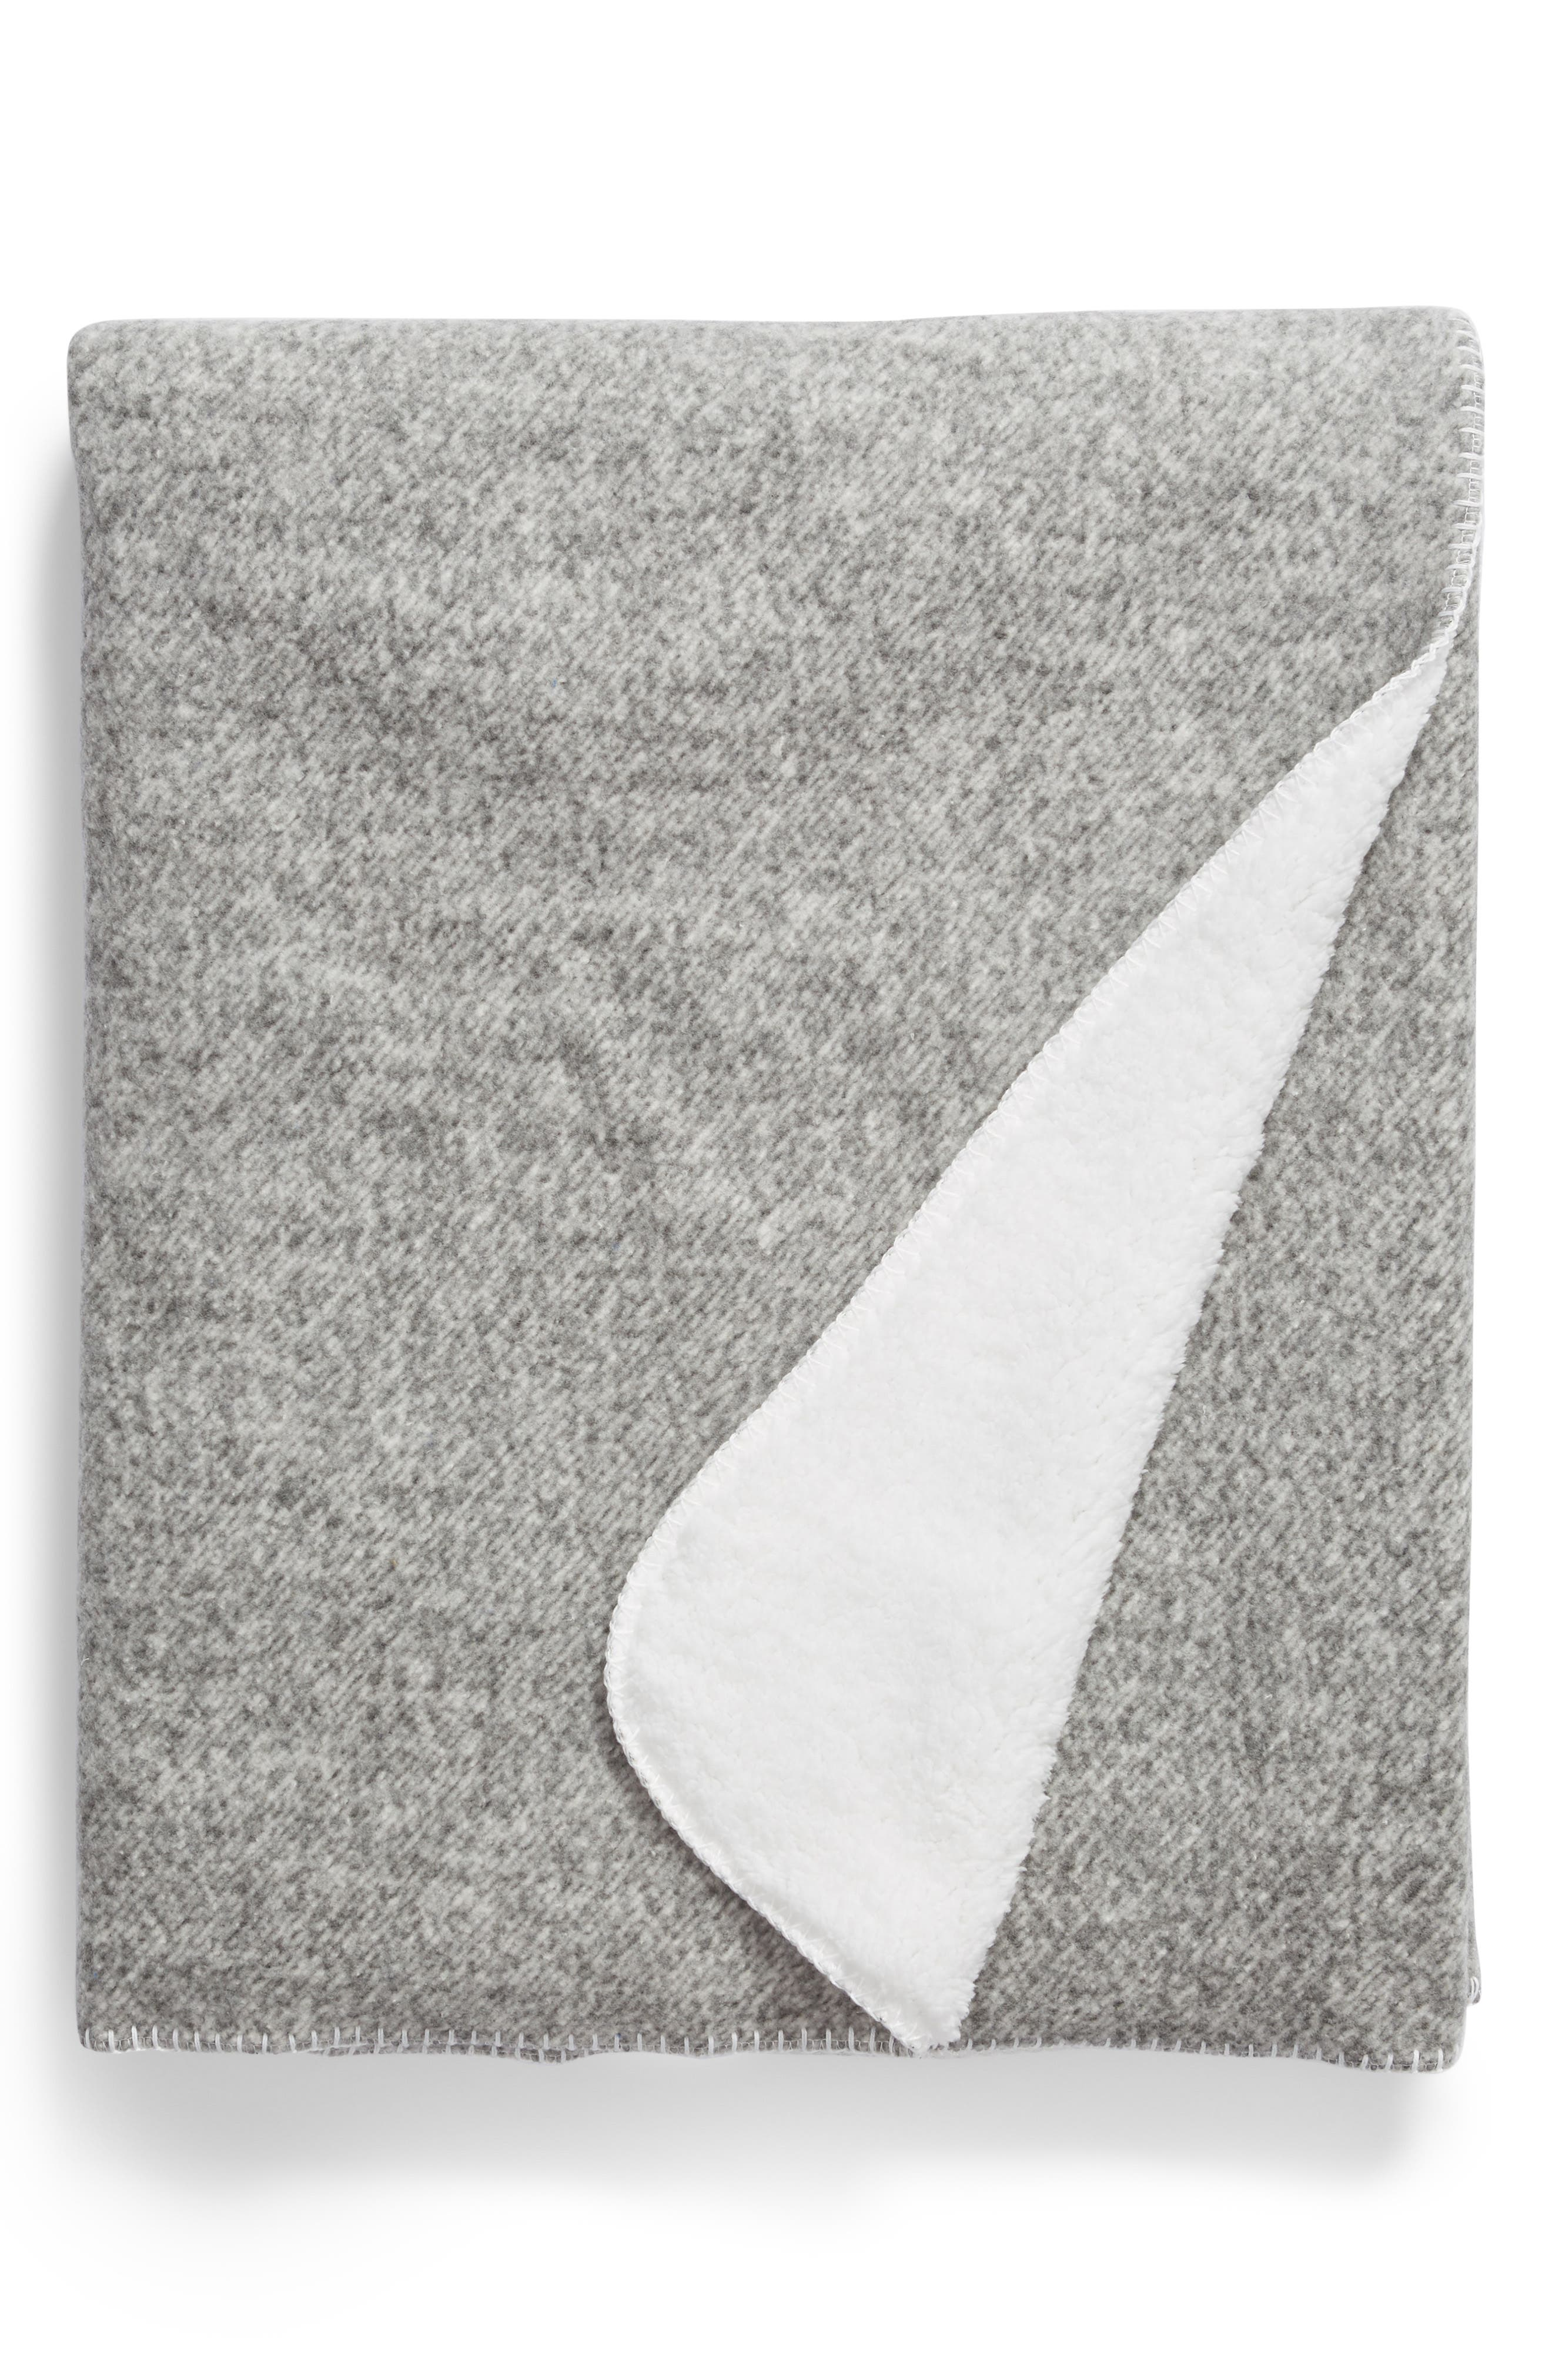 NORDSTROM AT HOME, Heather Faux Shearling Throw, Main thumbnail 1, color, GREY FROST